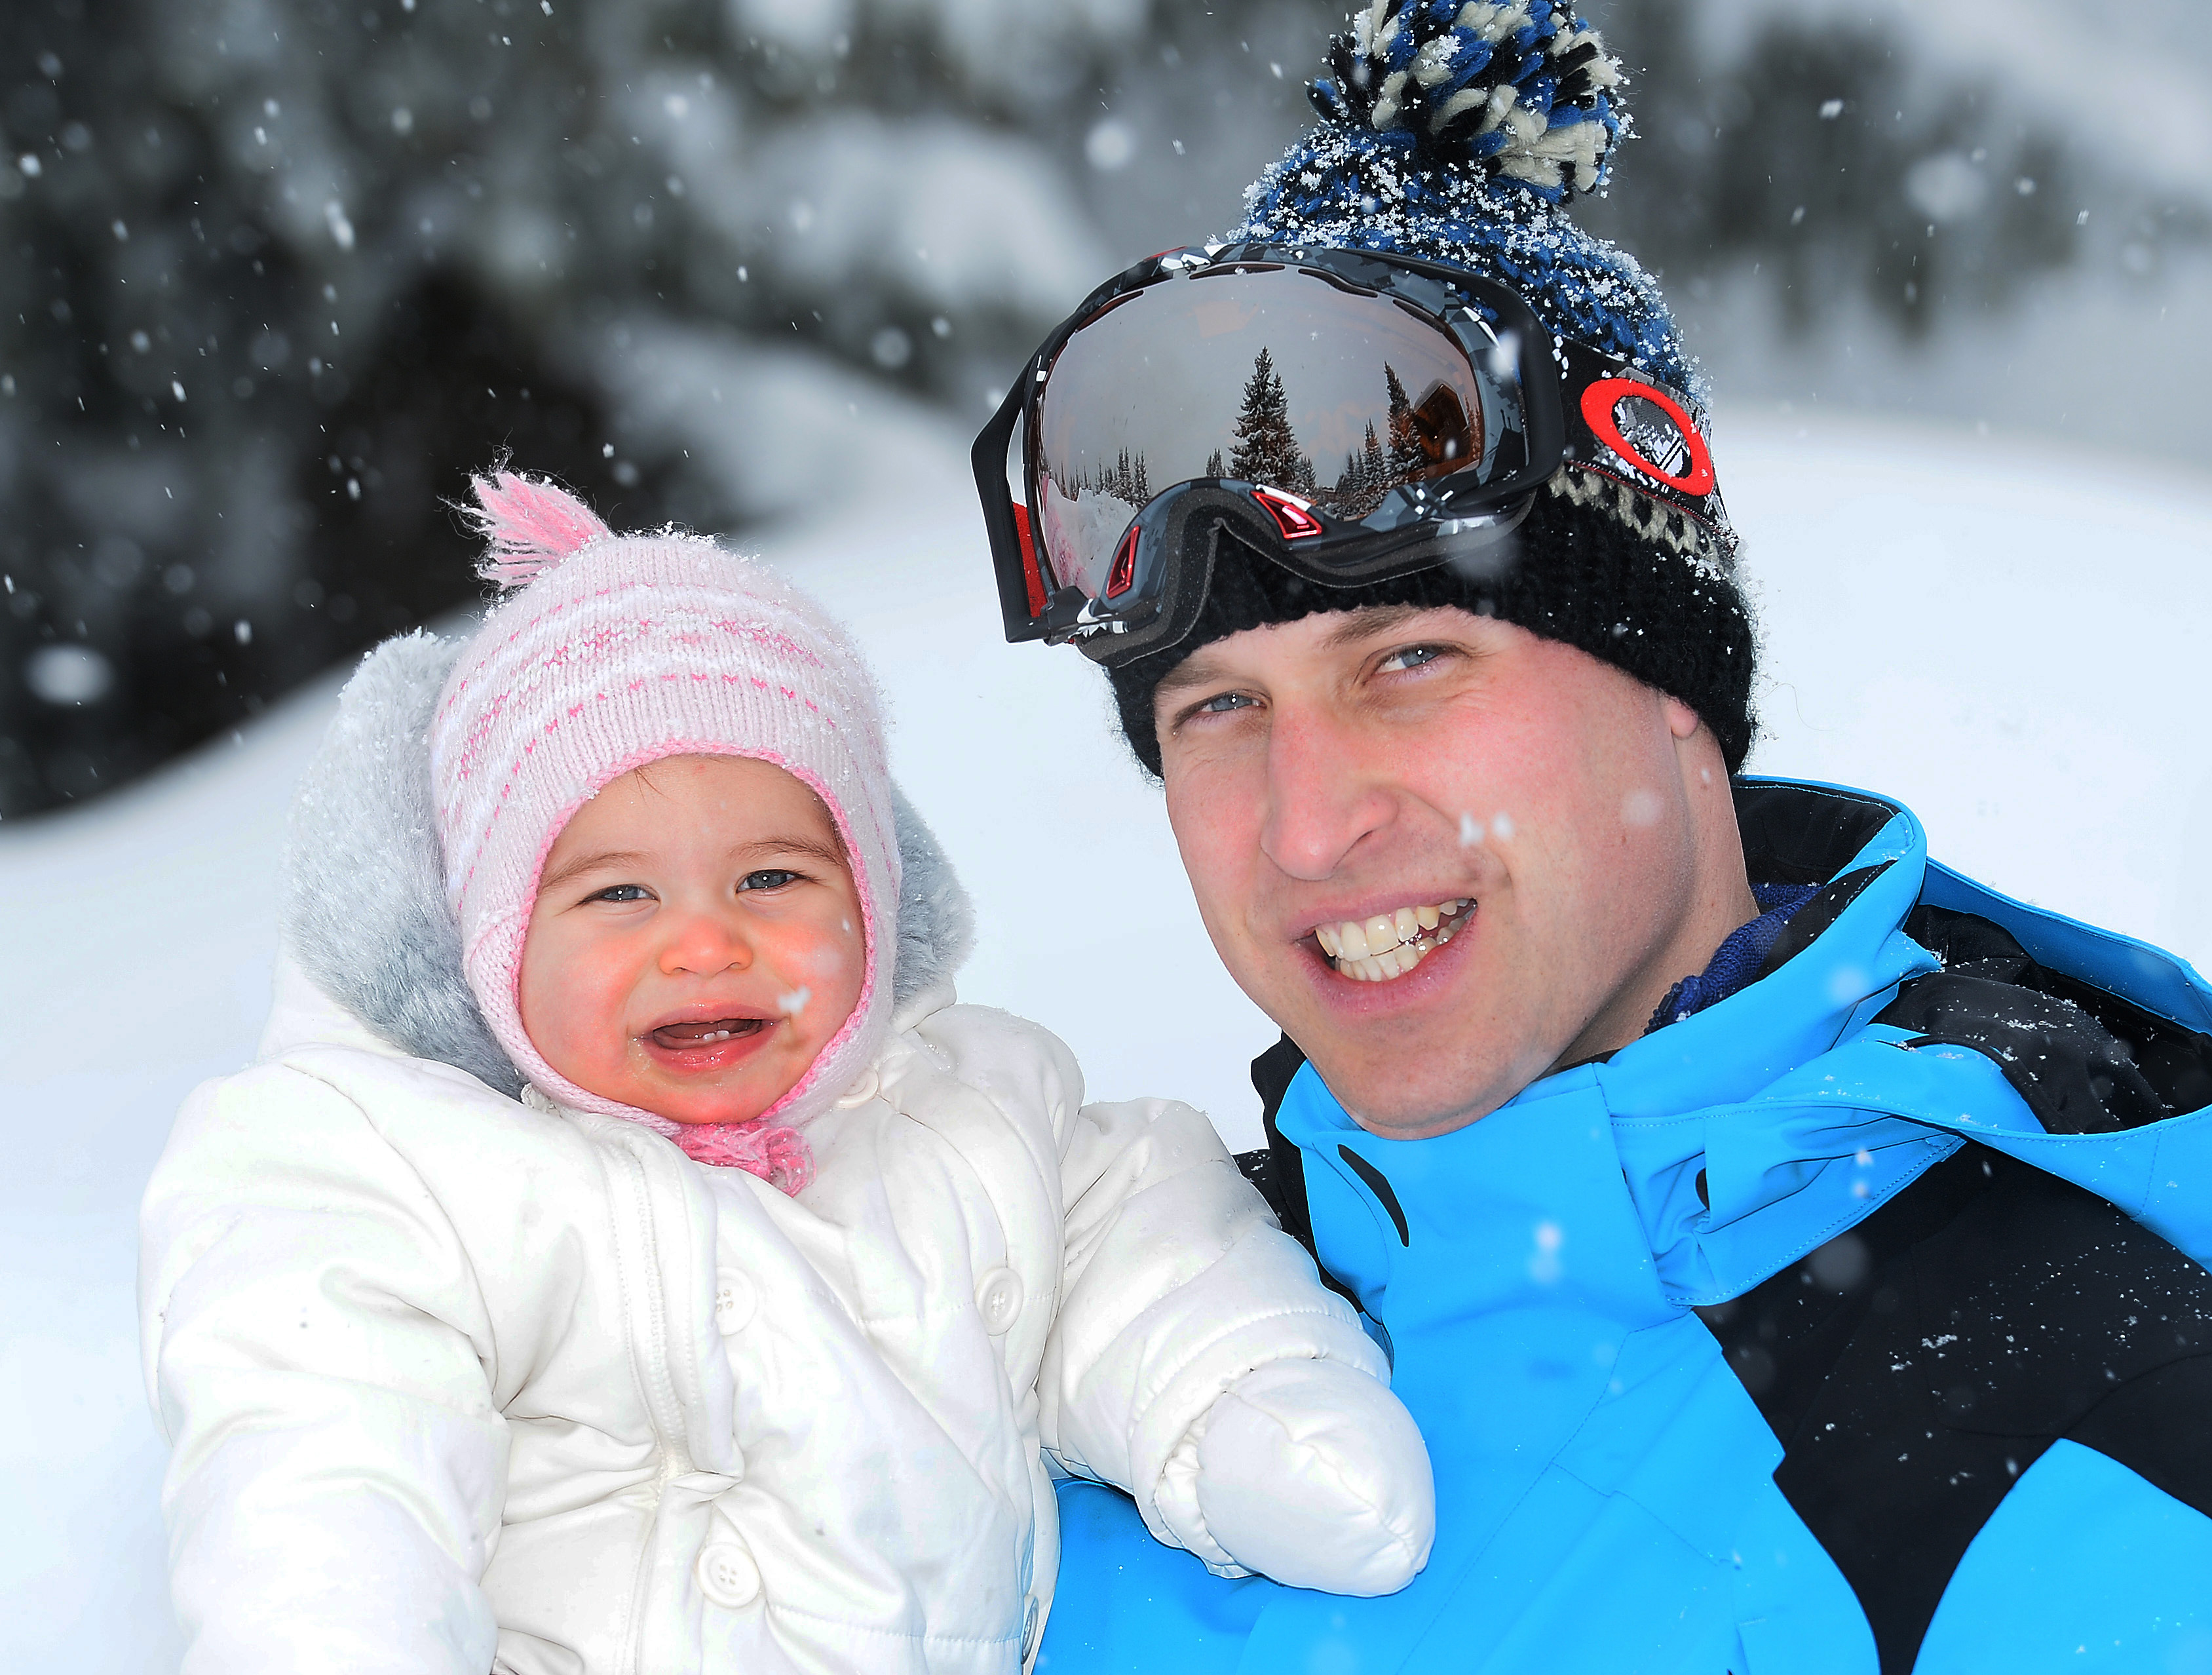 Britain's Prince William, Duke of Cambridge, poses with his daughter, Princess Charlotte during a private break skiing in the French Alps on March 3, 2016.